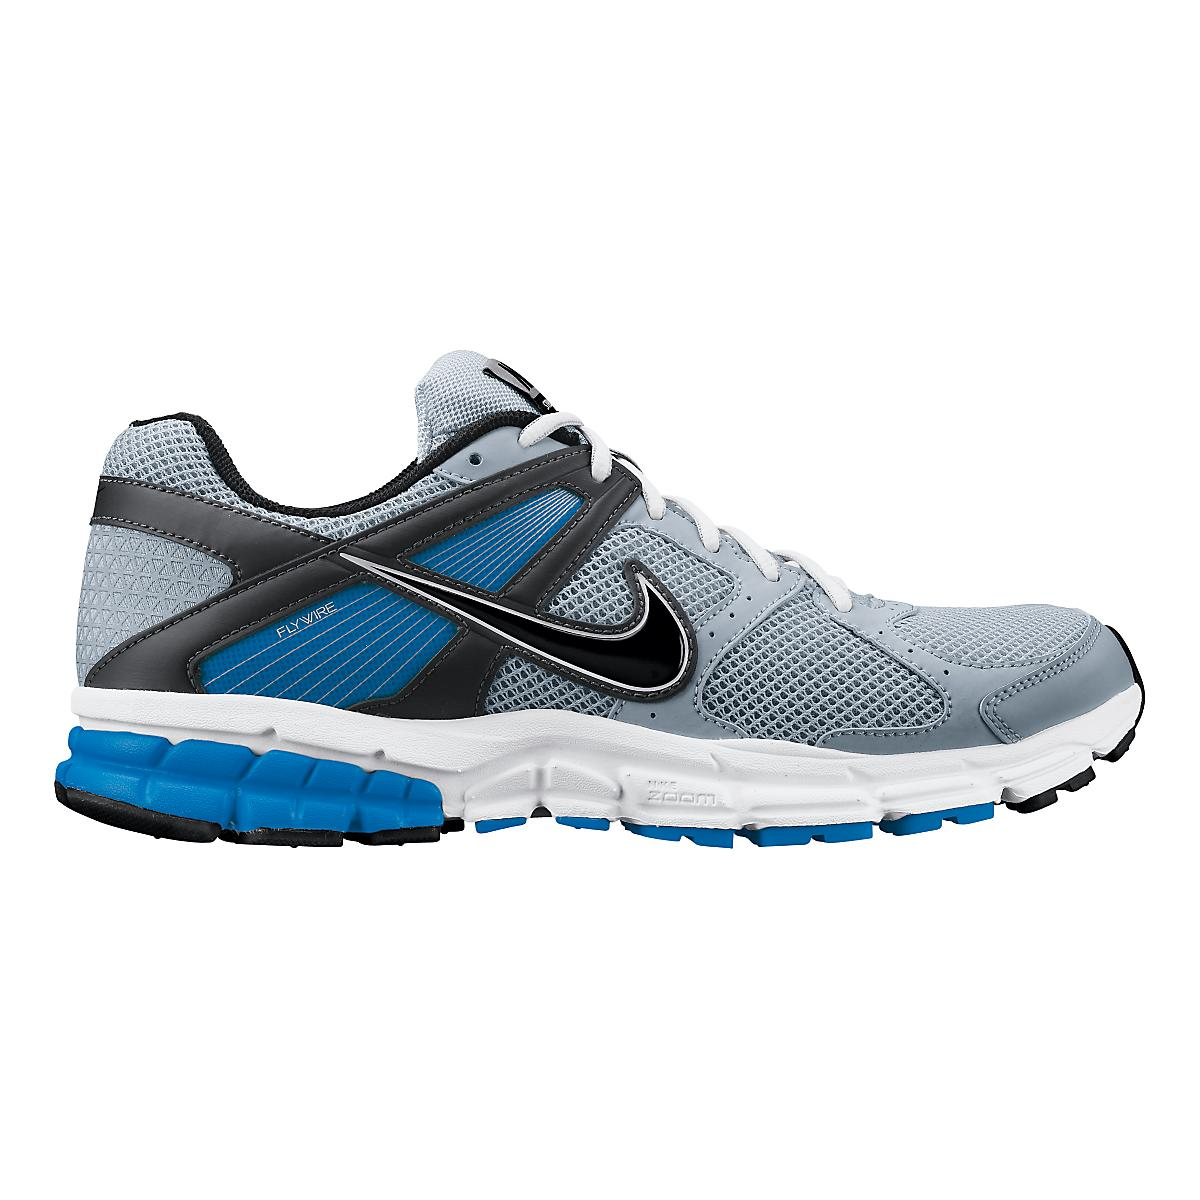 e15dea7abb1f Mens Nike Zoom Structure Triax+ 14 Running Shoe at Road Runner Sports